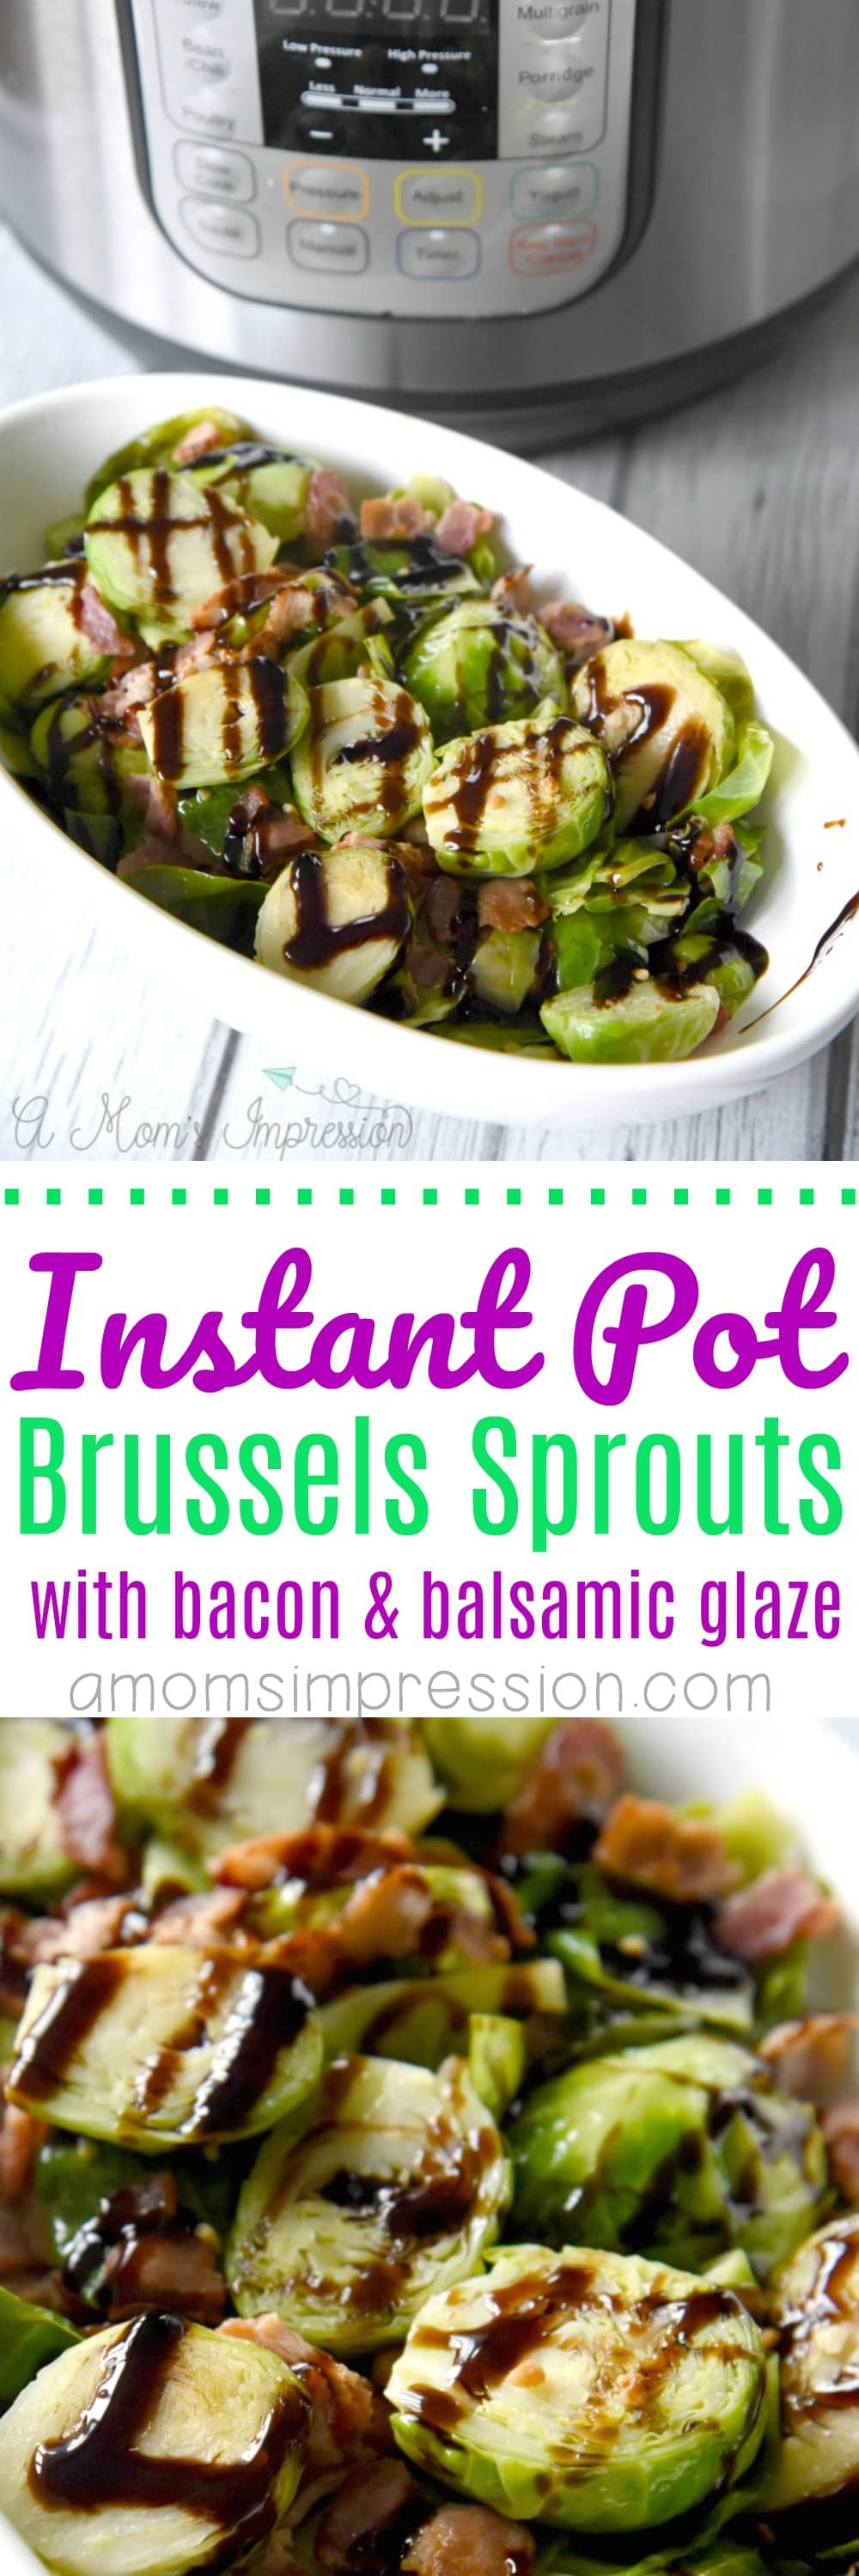 These Bacon and Balsamic Instant Pot Brussels Sprouts are not only tasty, they can be made in about 15 minutes using your pressure cooker. This easy recipe will delight everyone at your table!